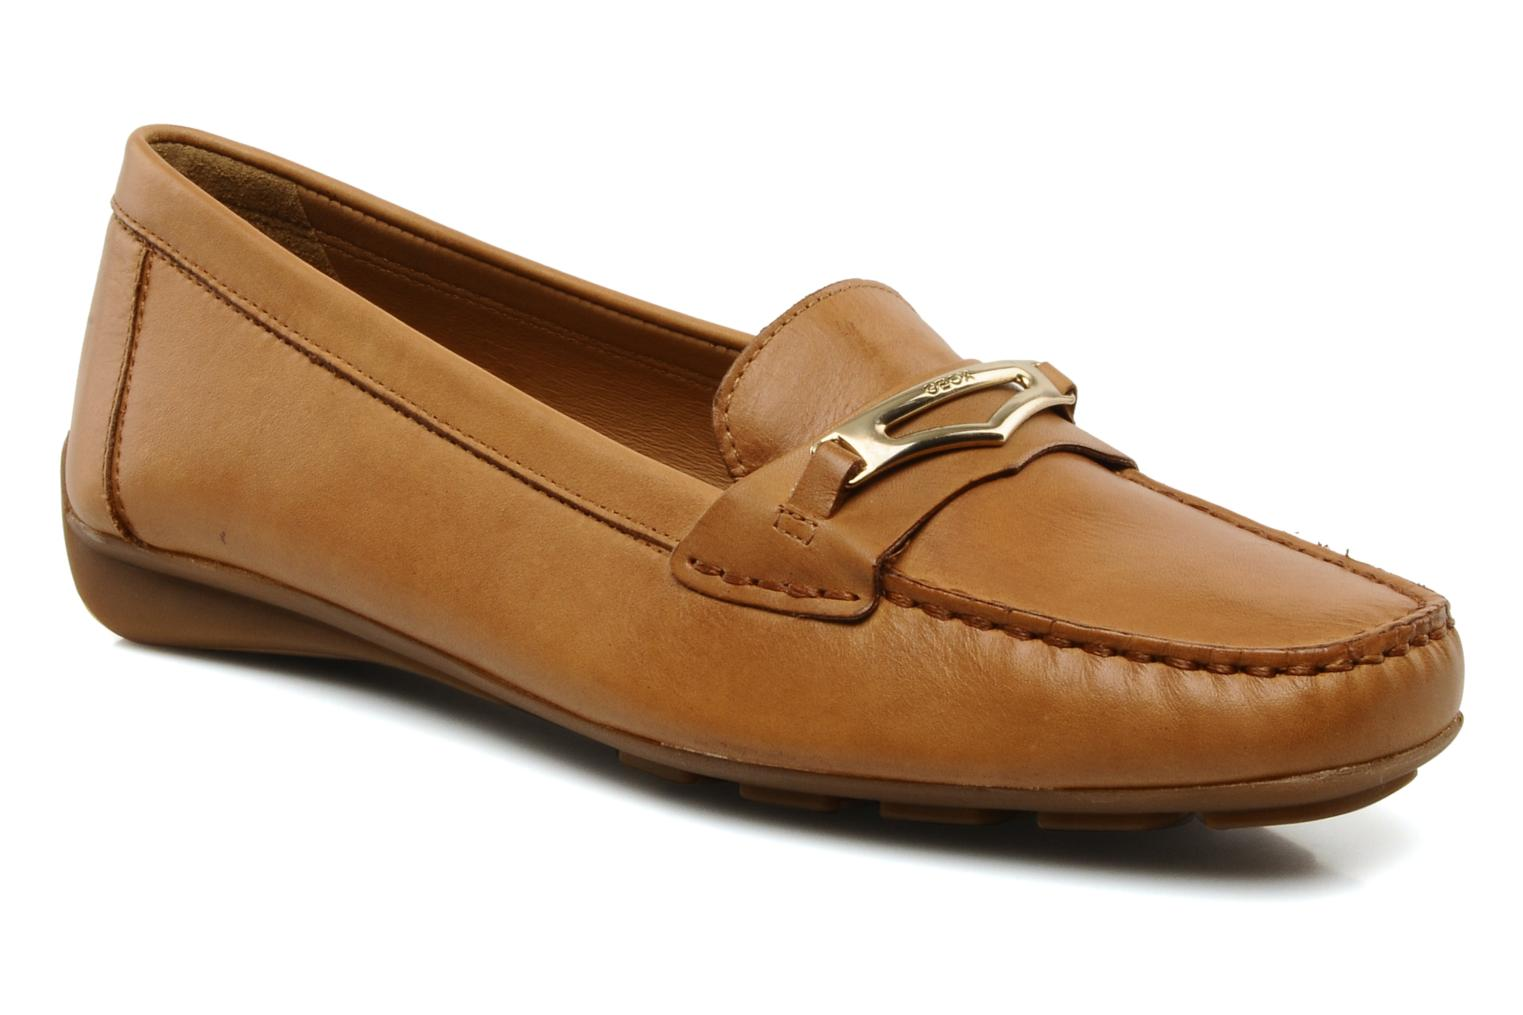 Mocassins D grin a by Geox